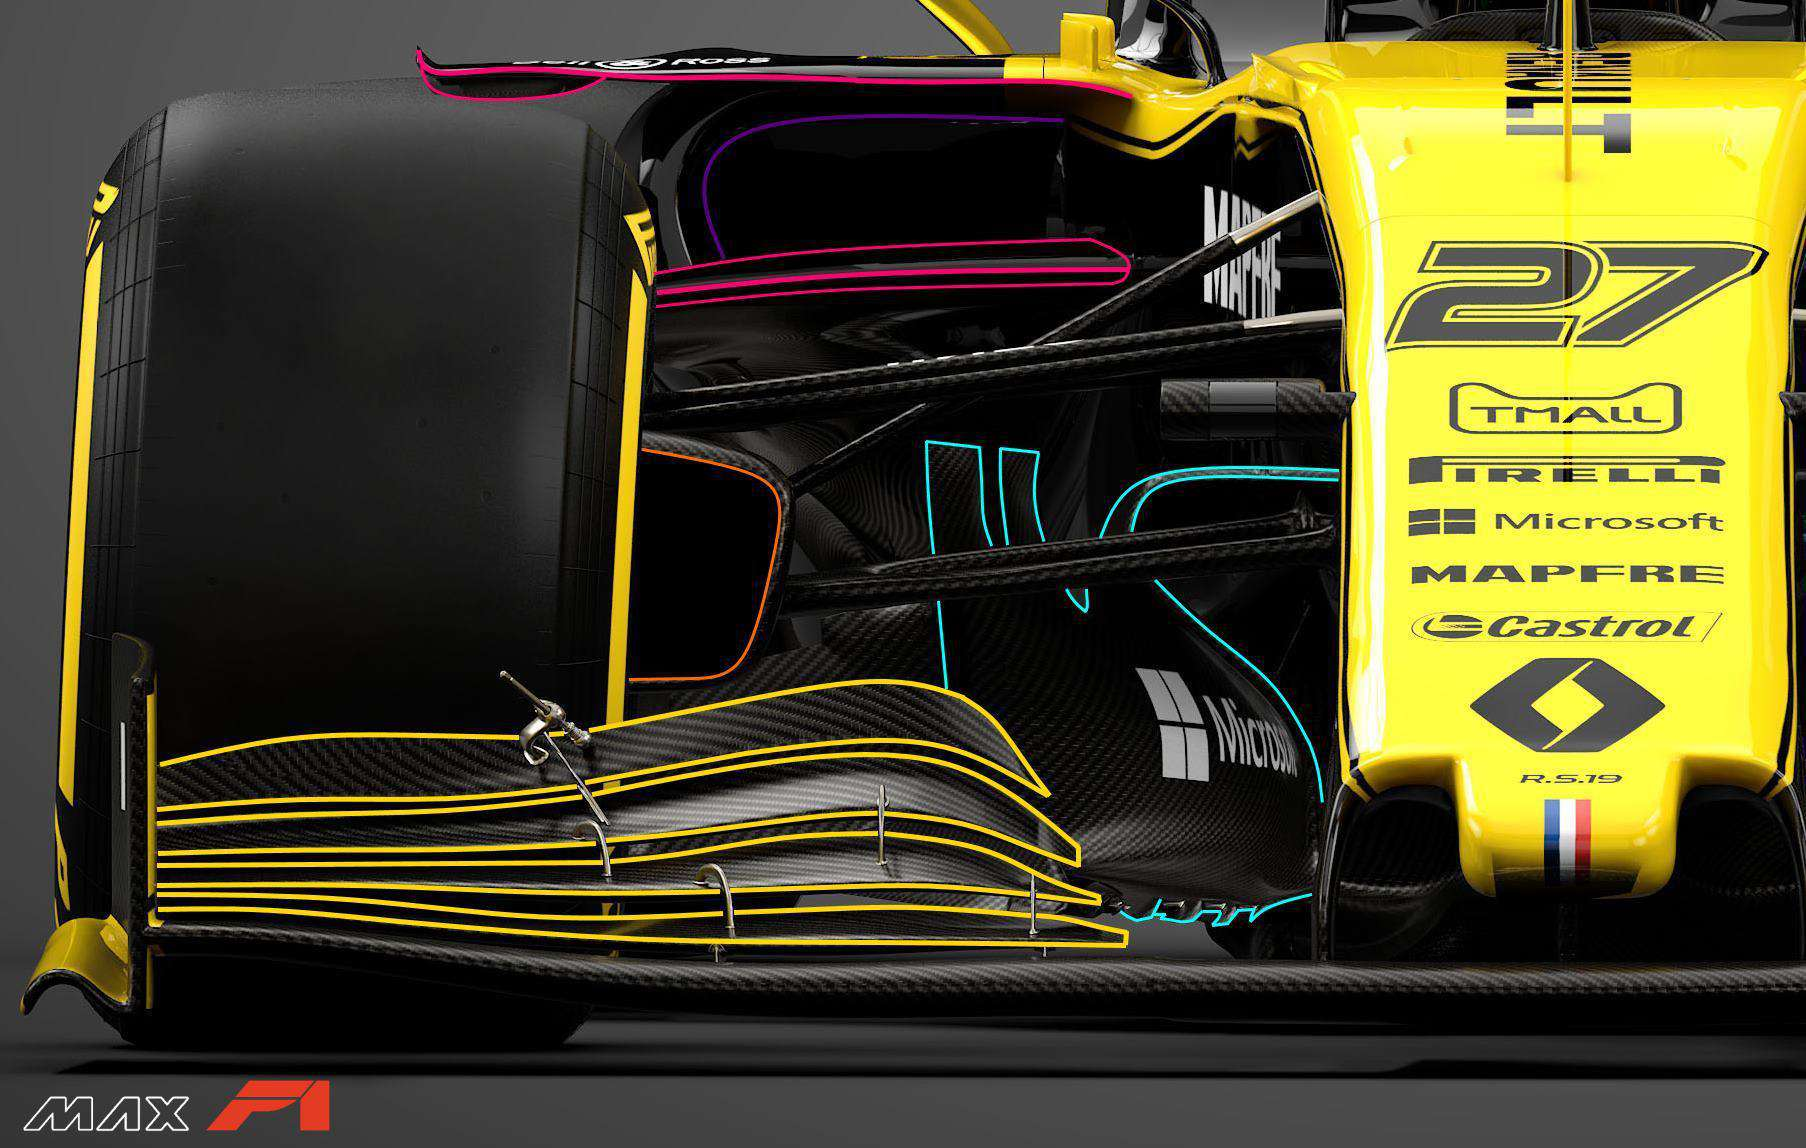 2019 Renault RS19 sidepod inlets front suspension bargeboards front view Photo Renault edited by MAXF1net